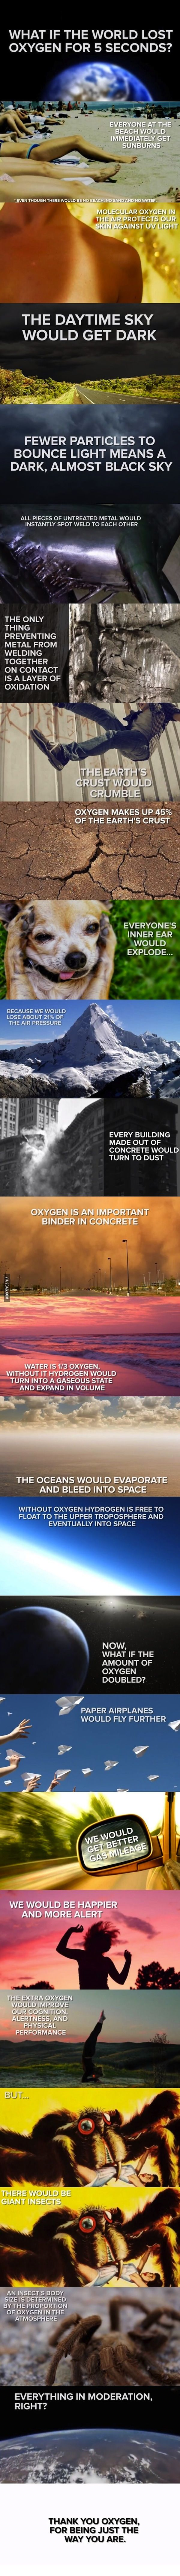 What If The World Lost Oxygen For 5 Seconds? The world was made perfect for Humans, and made by the most perfect being!